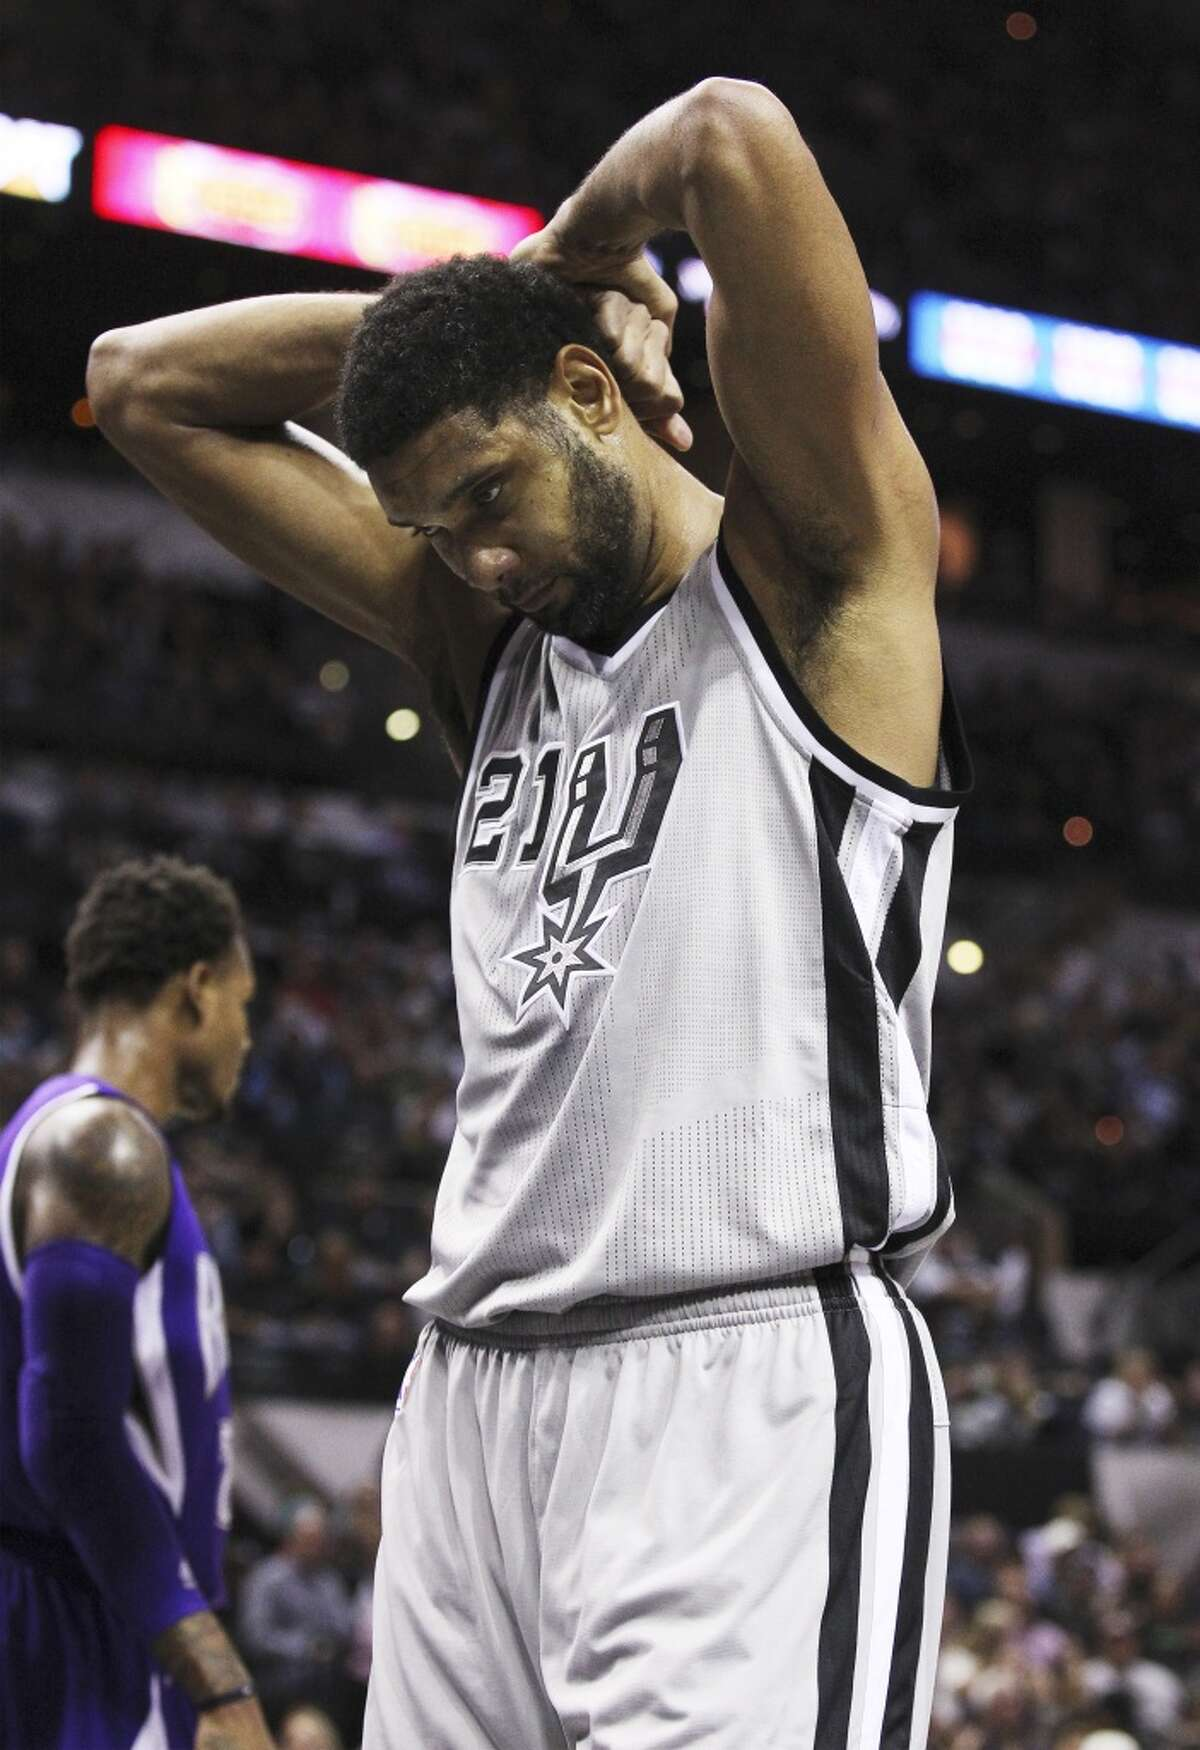 Spurs' Tim Duncan (21) reacts after missing a shot against the Sacramento Kings at the AT&T Center on Friday, Nov. 28, 2014. (Kin Man Hui/San Antonio Express-News)